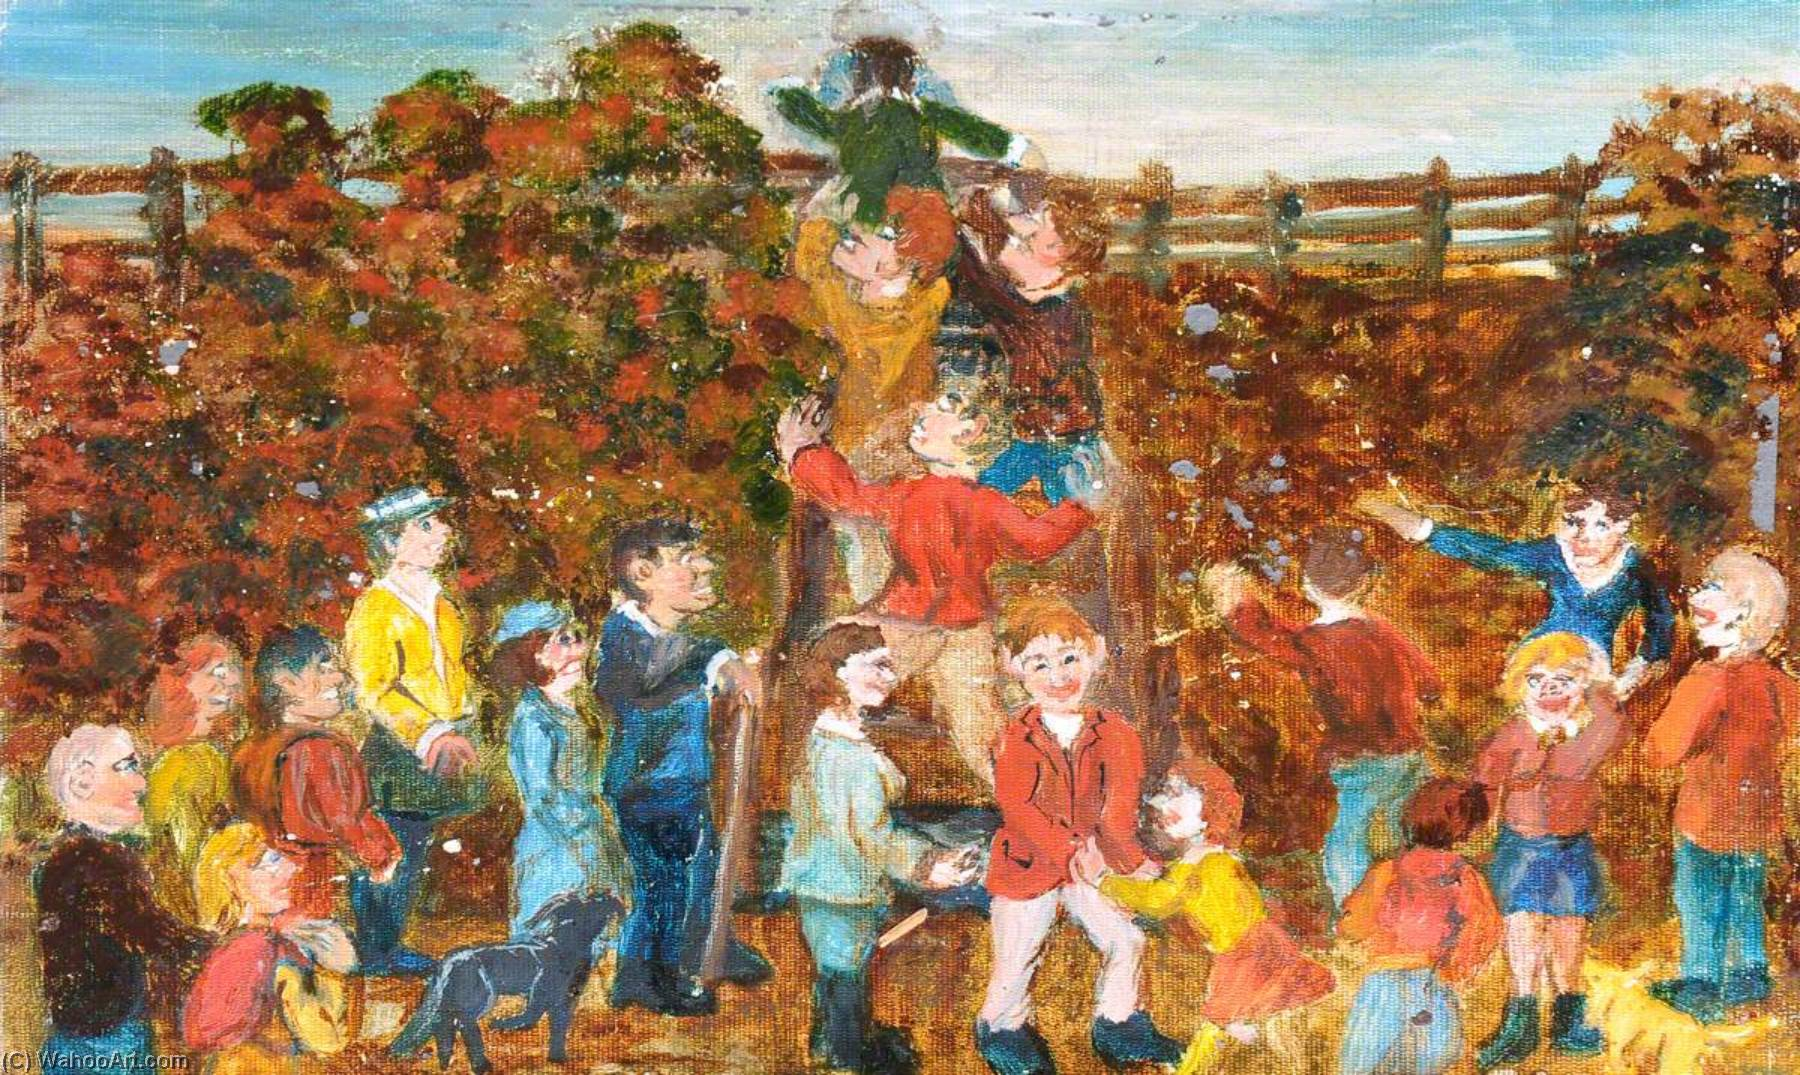 Helping Hands, Cancer Research Sponsored Walk, Buckley, 1st October 1994, Oil On Canvas by James Bentley